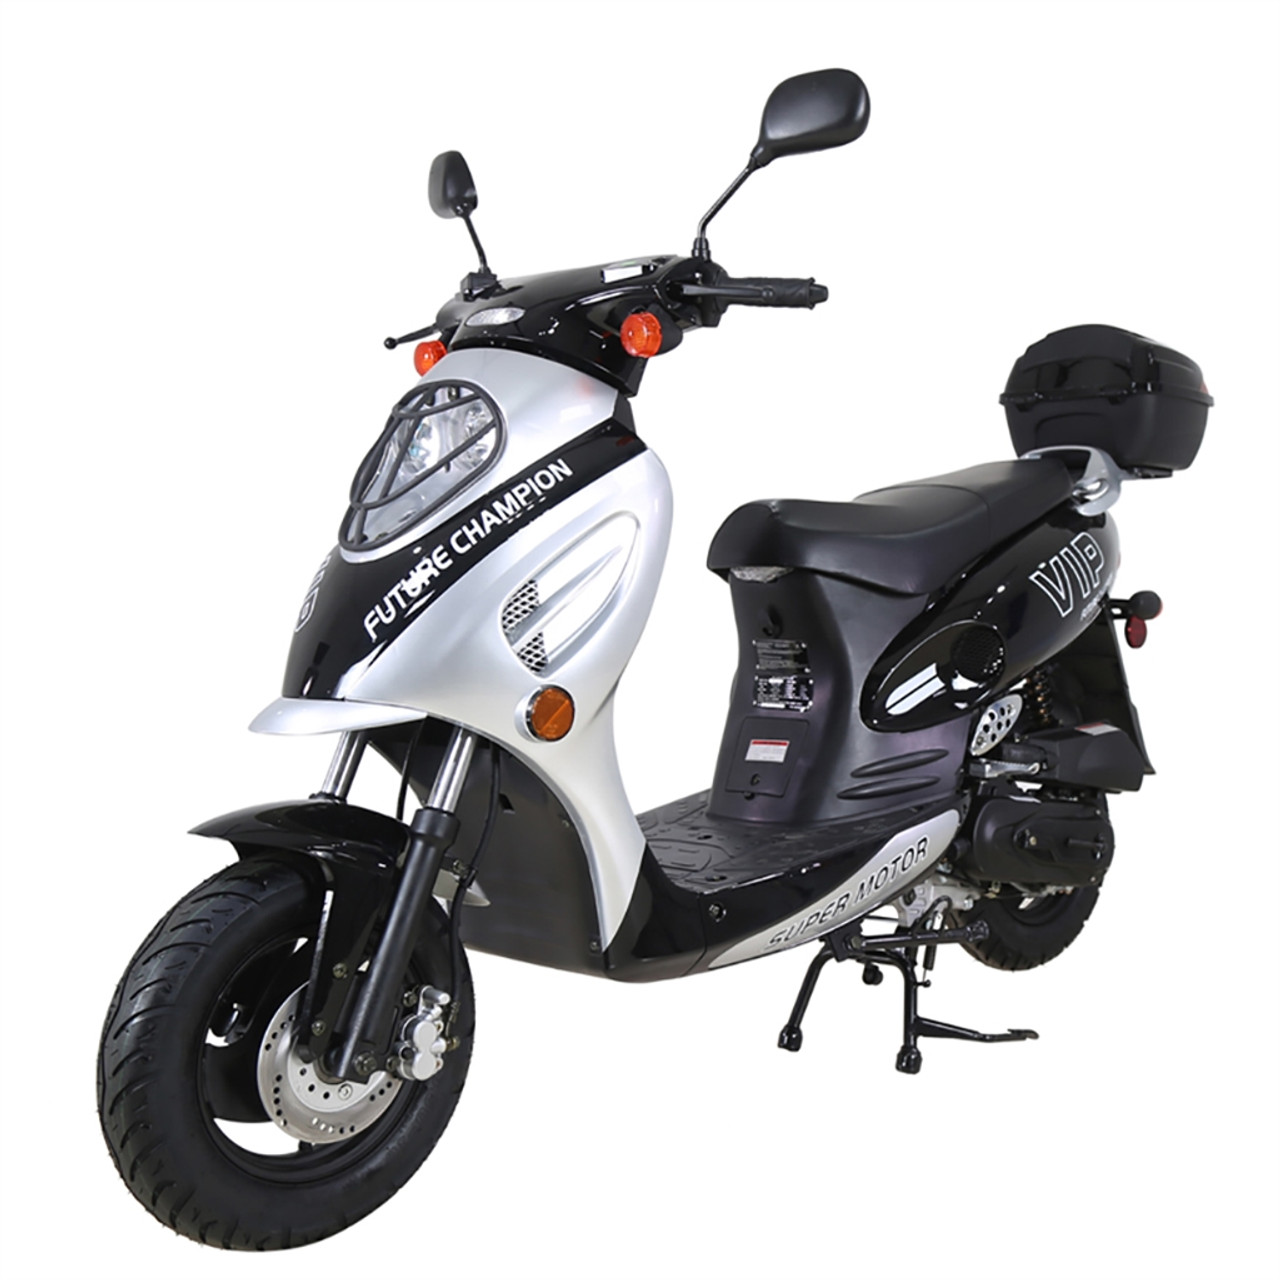 TAOTAO (CY50A) VIP 50cc QMB139 & POWERMAX 150cc GY6 SCOOTER COMPLETE on